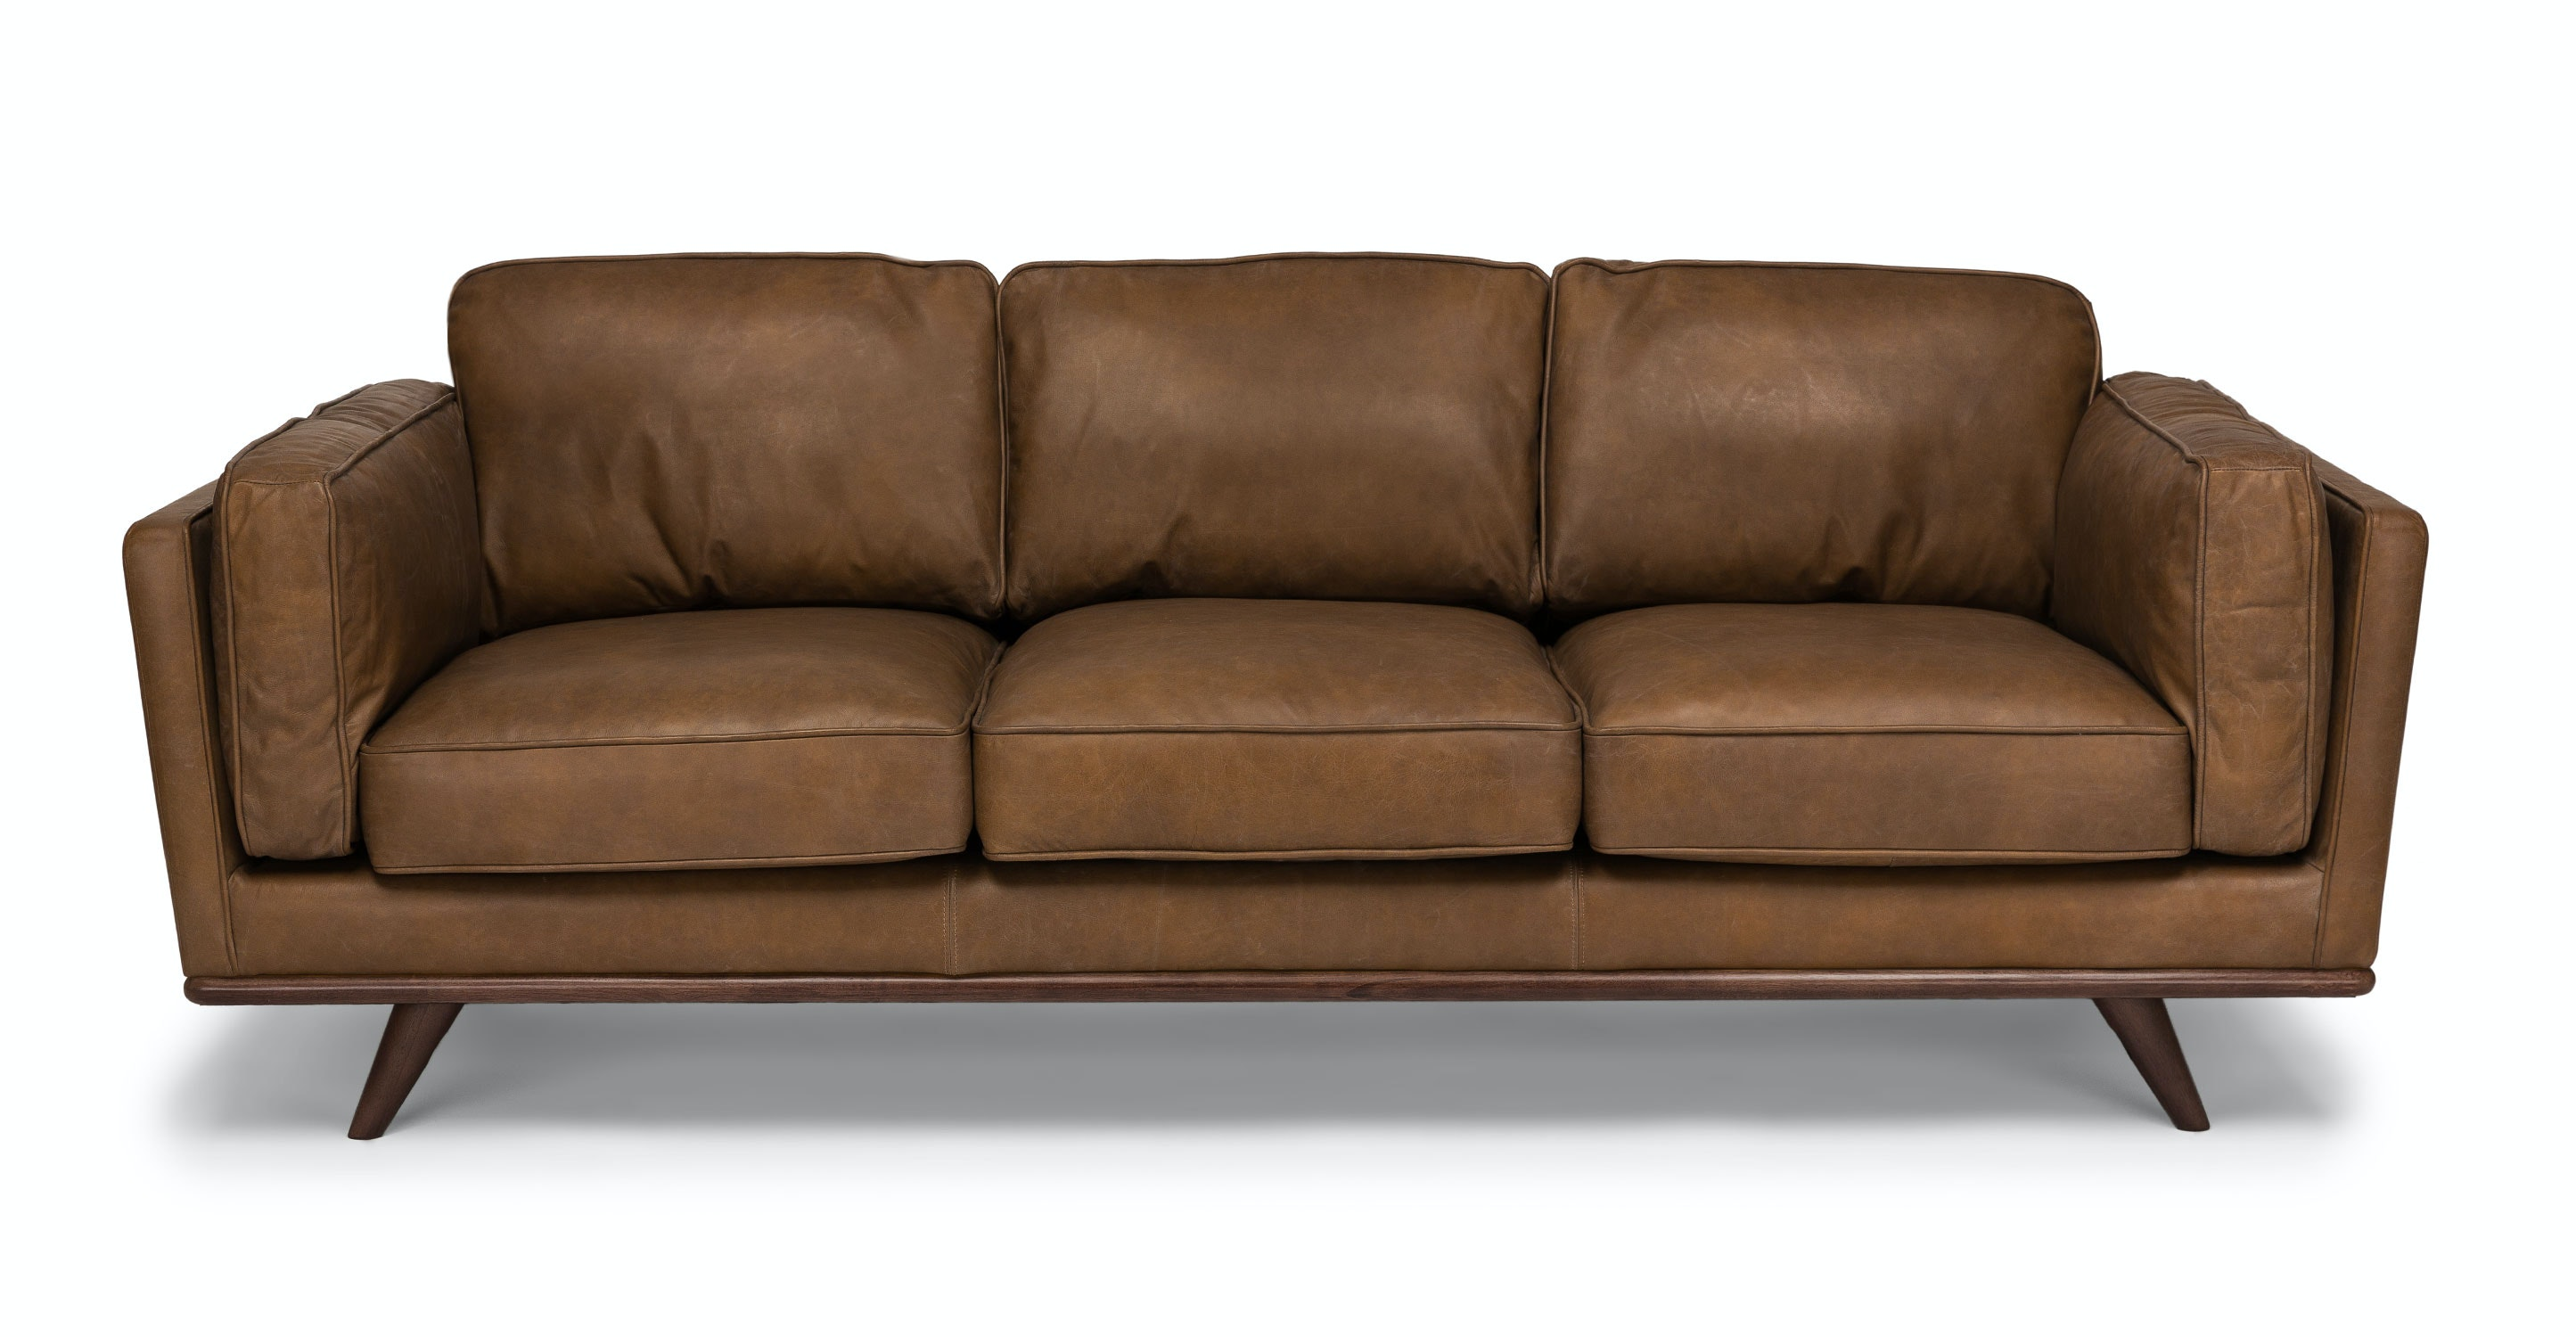 Etonnant Timber Oxford Tan Sofa   Sofas   Article | Modern, Mid Century And  Scandinavian Furniture